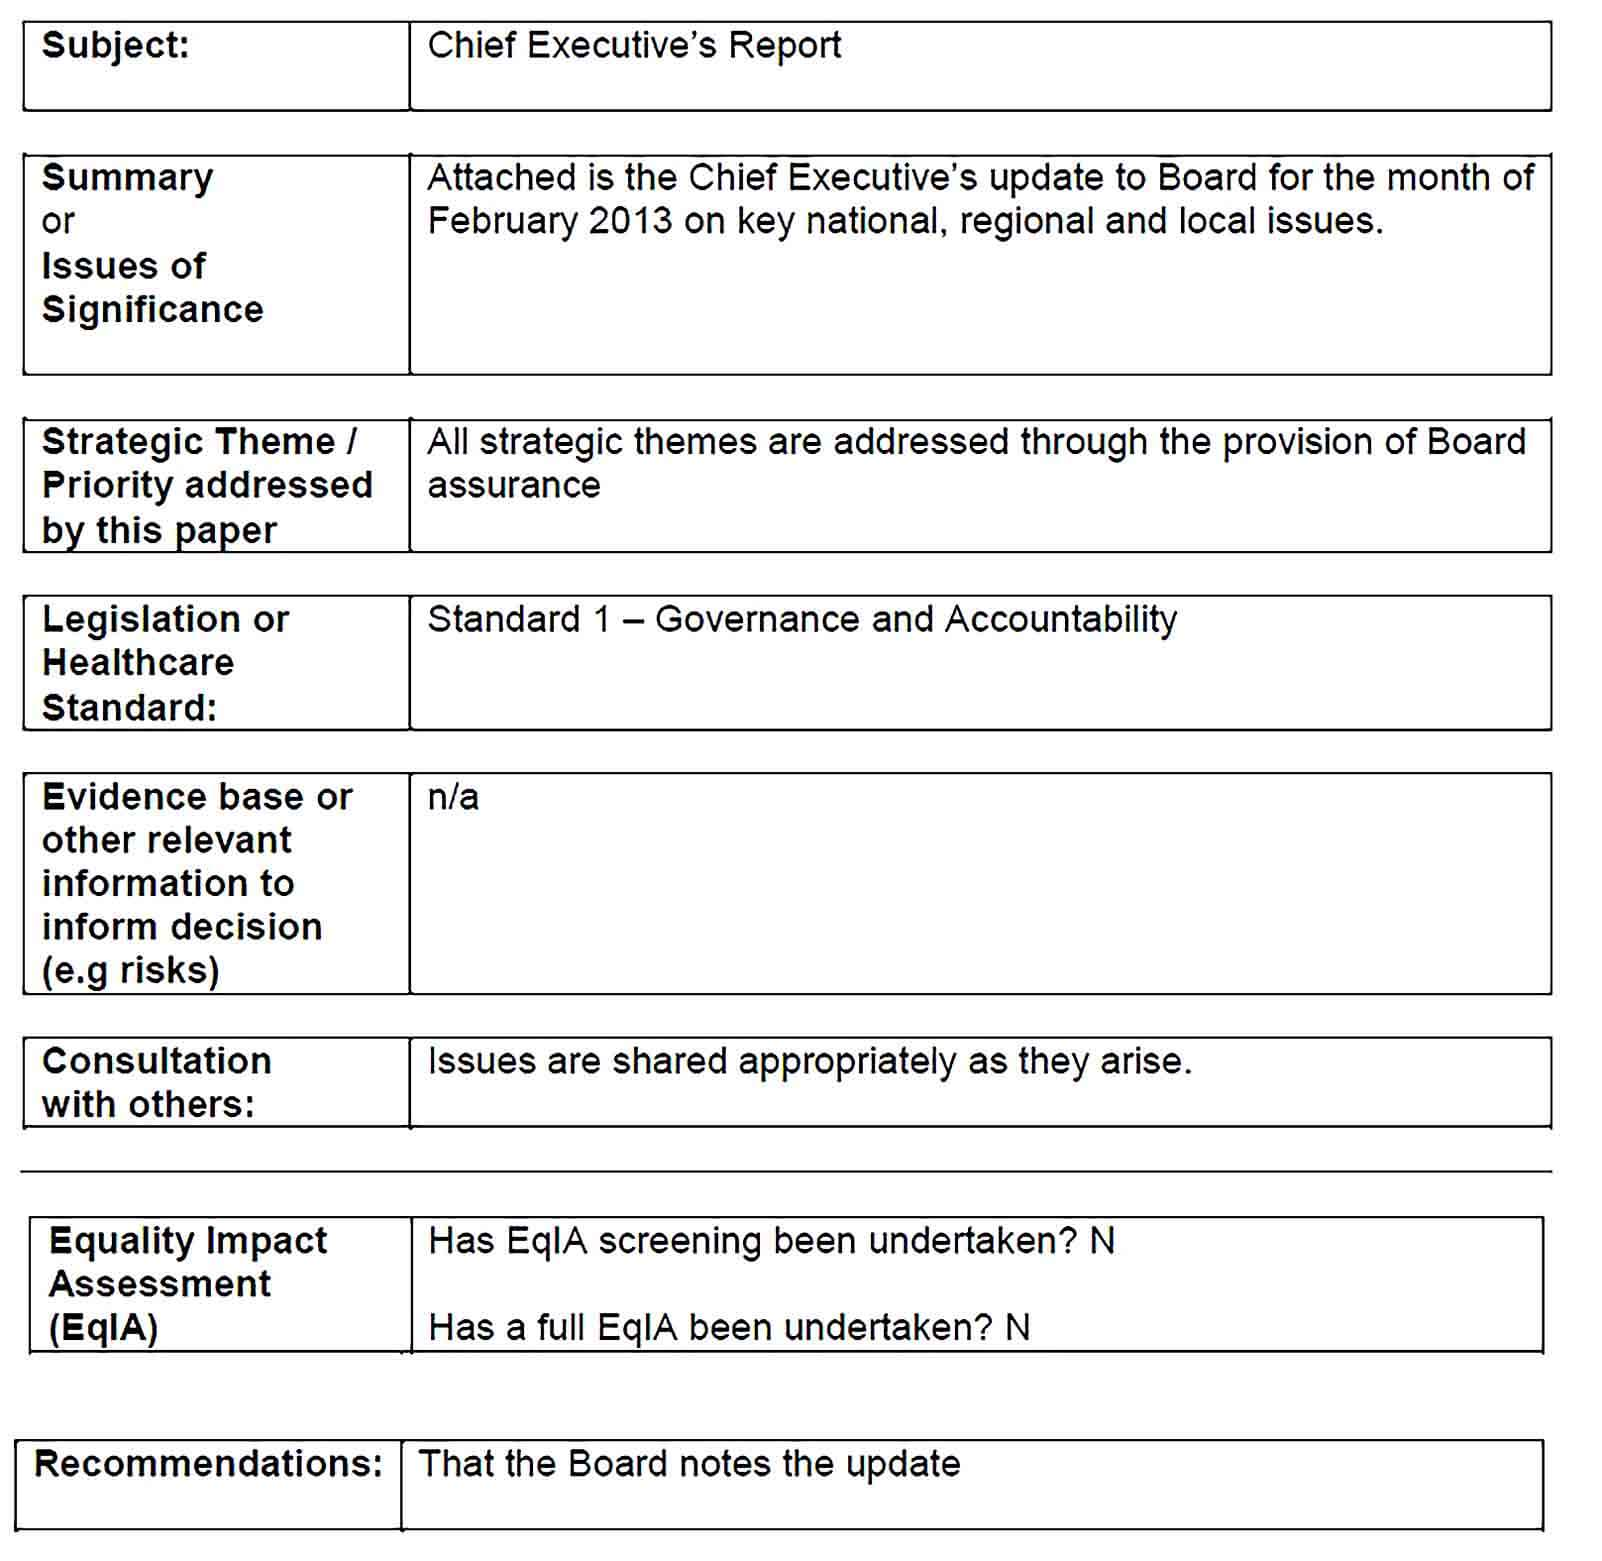 Sample chief executive report template